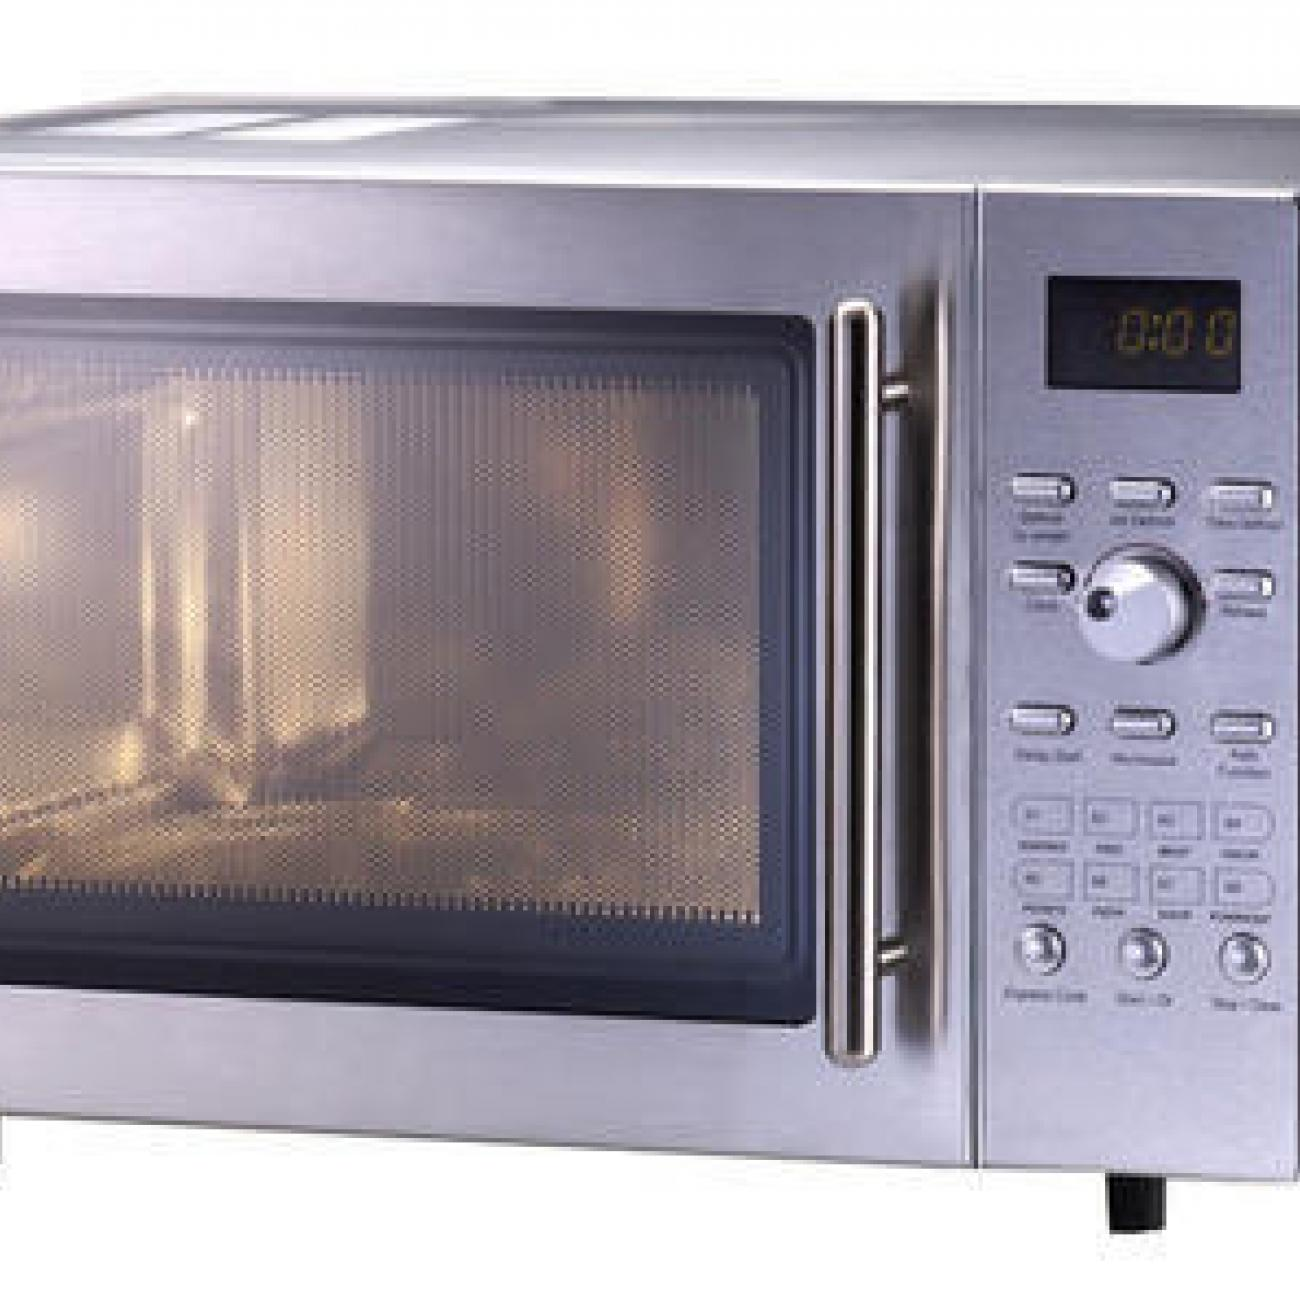 Microwave Ovens.